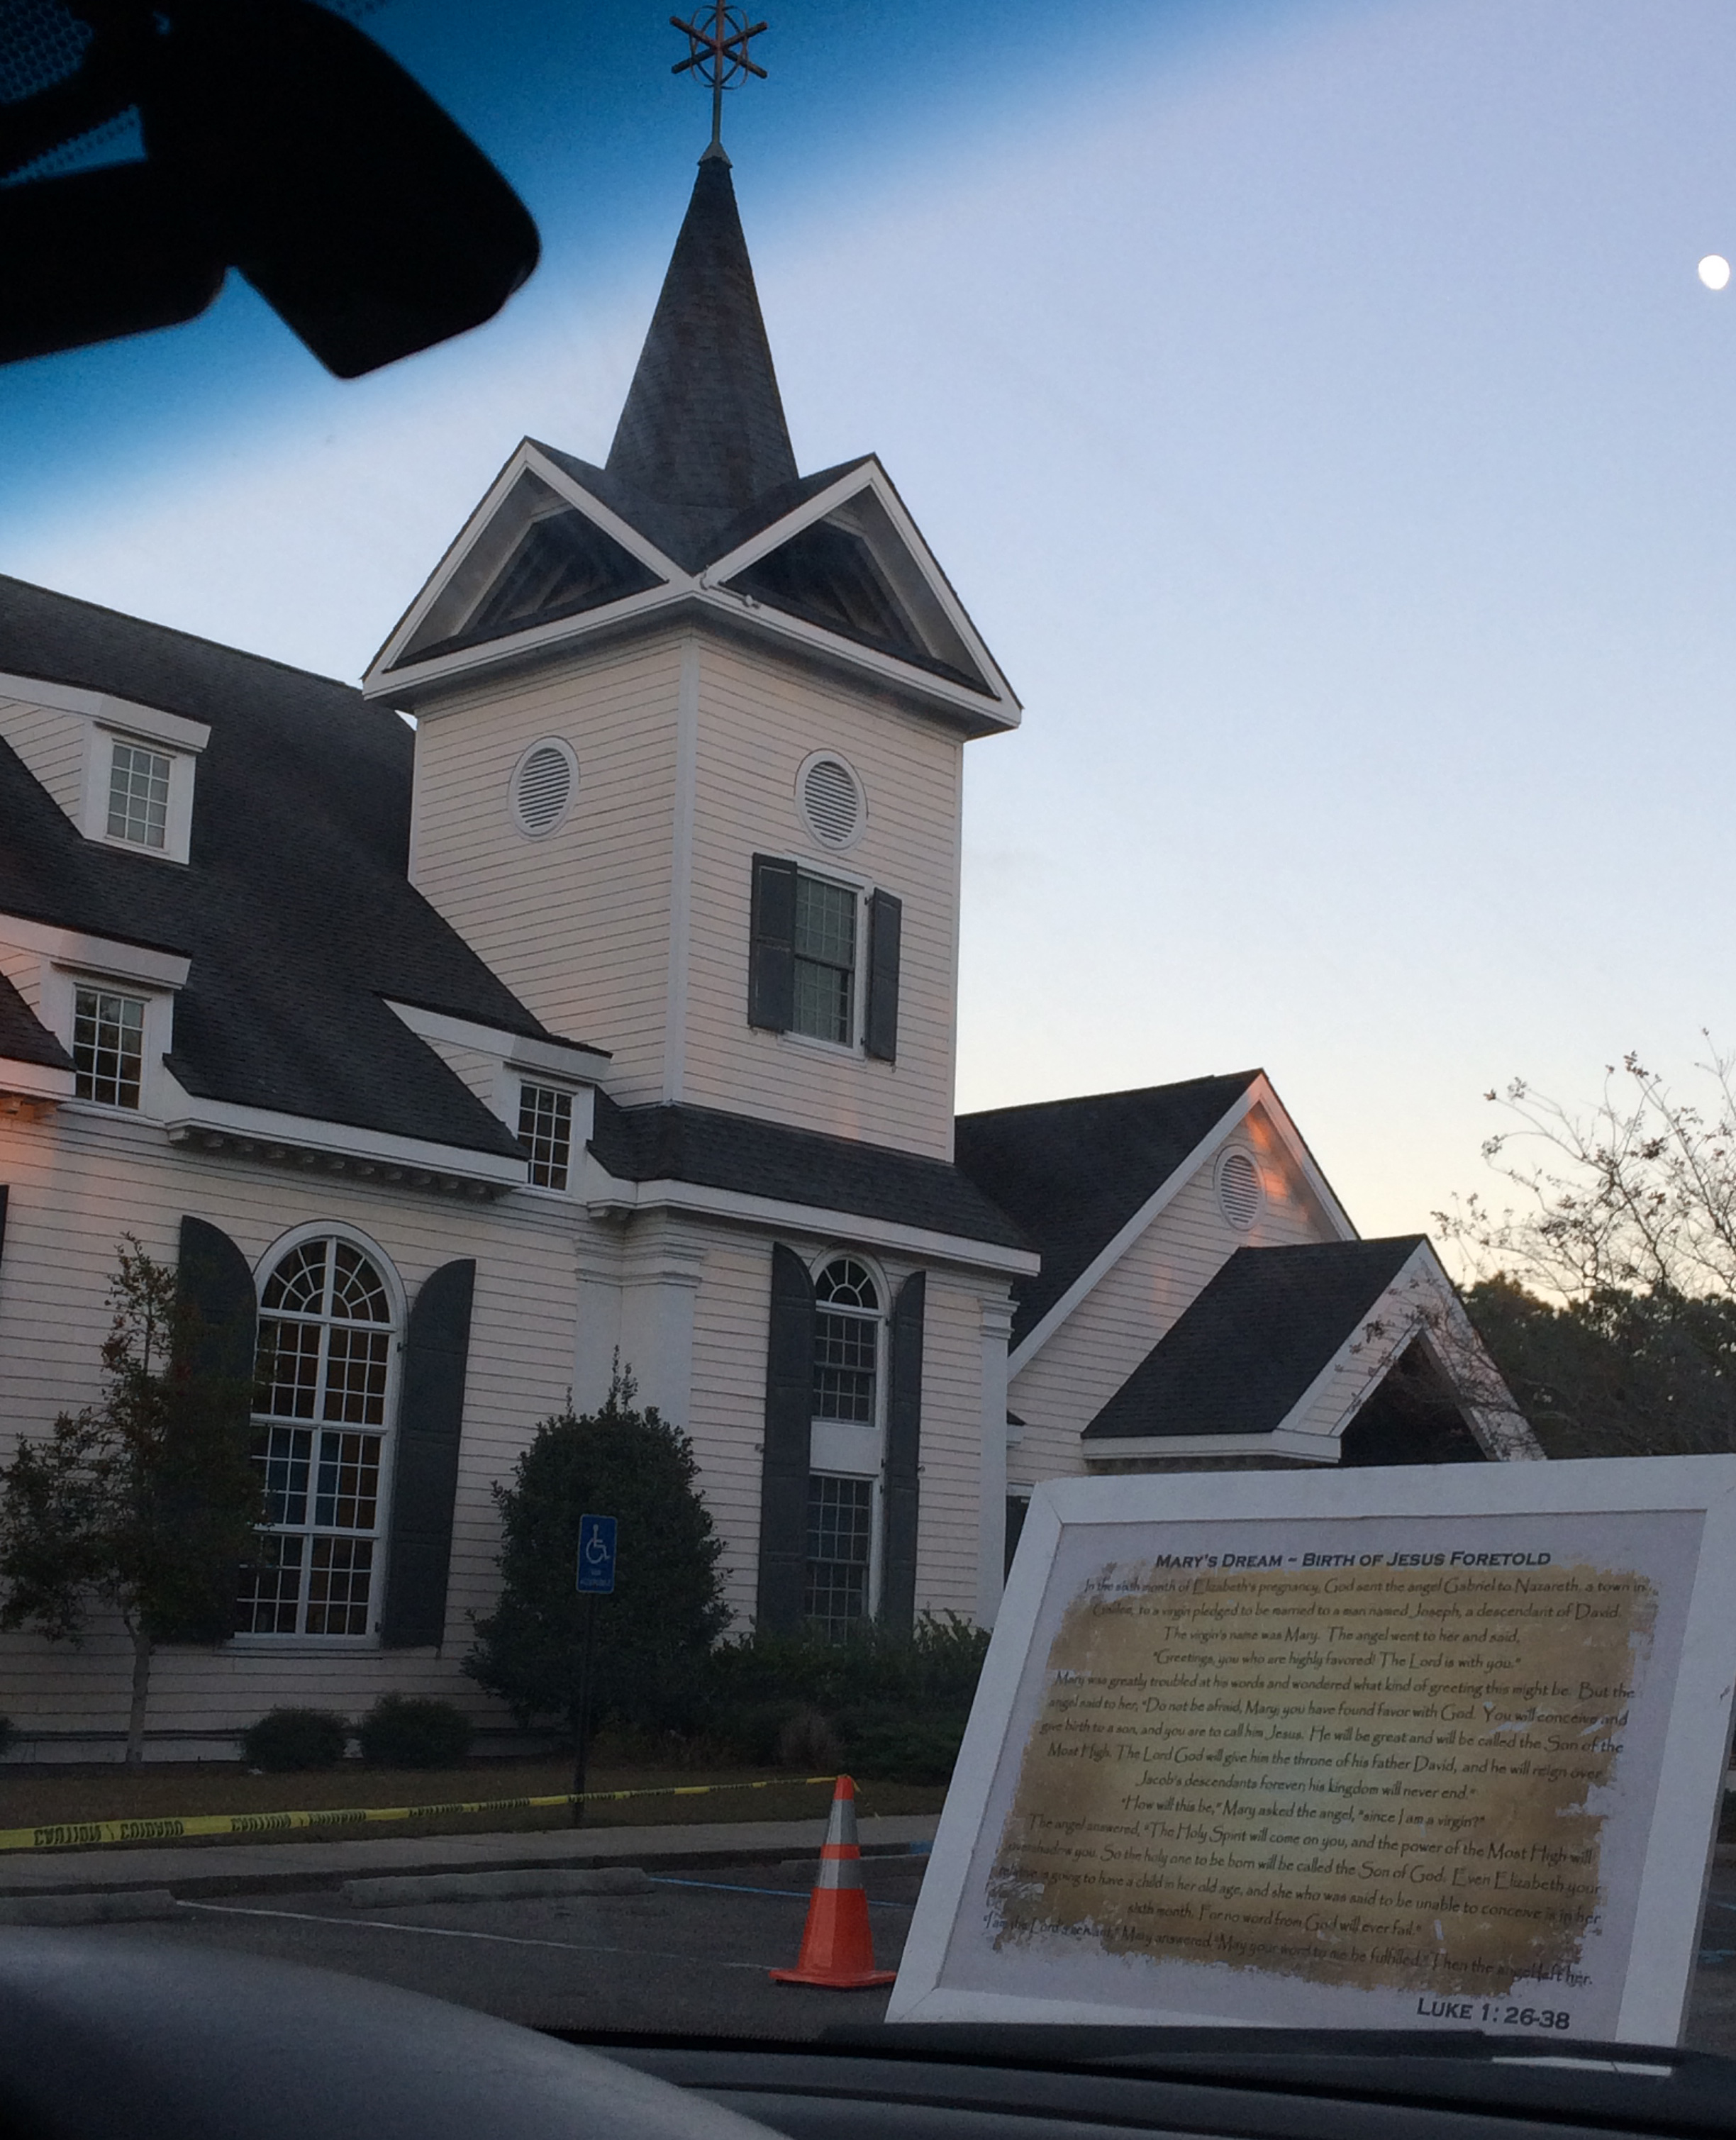 This was our view right after we turned into the property of the Church of the Resurrection in Surfside Beach. The church itself is on the left and the board you see right in front of our dash has scripture on it, describing one of the seven scenes of the Drive-Thru Nativity.